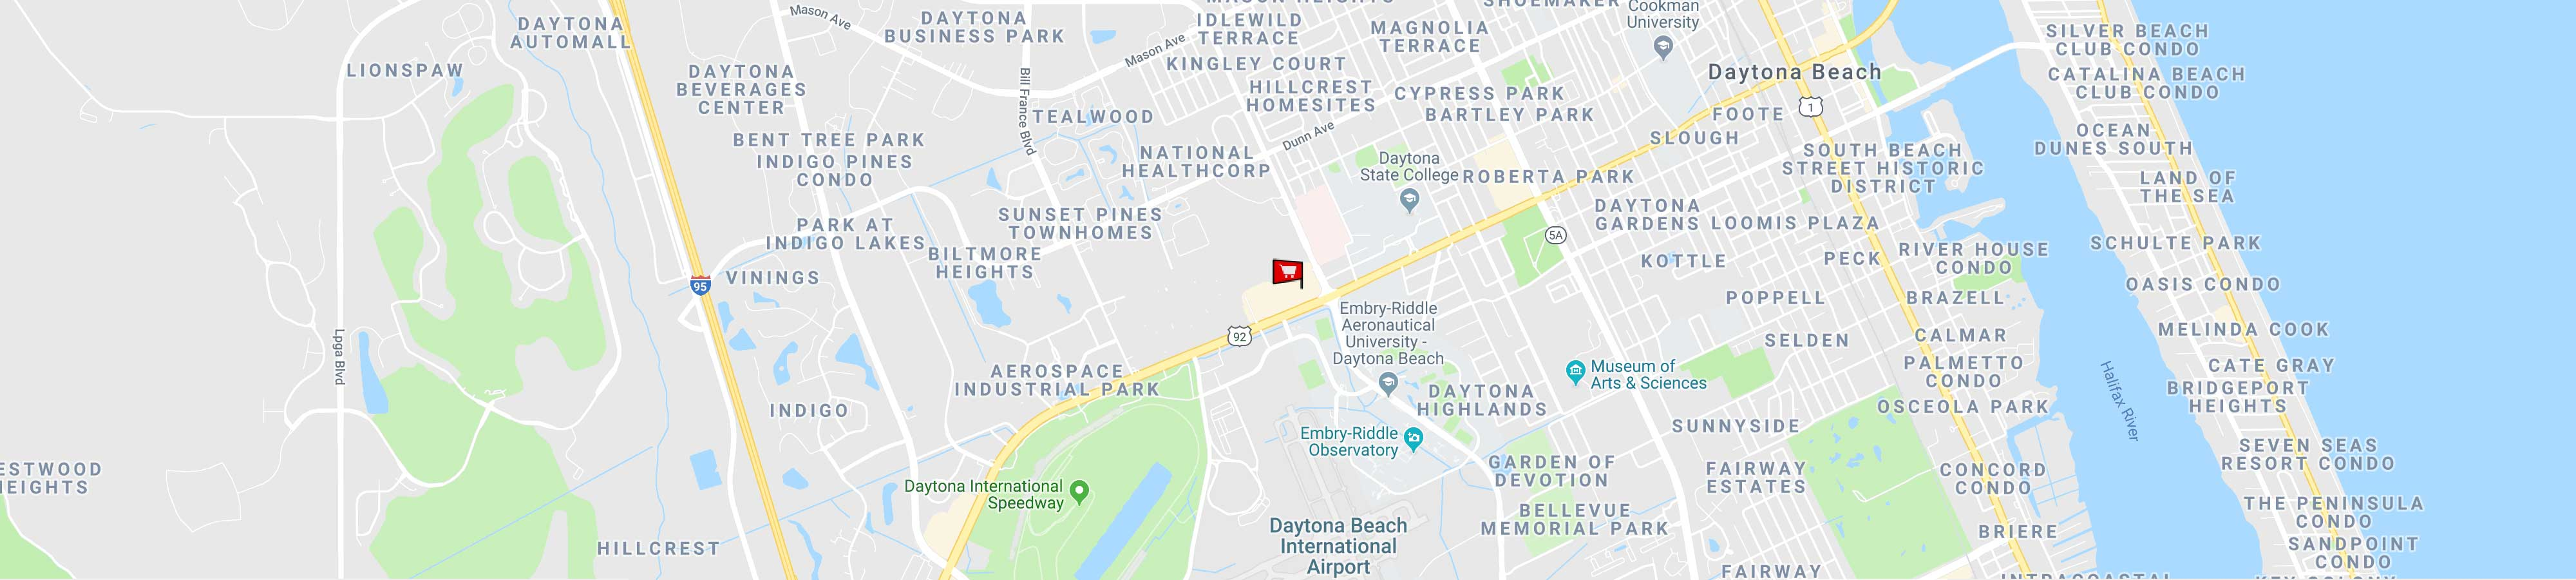 Daytona Beach Store Map